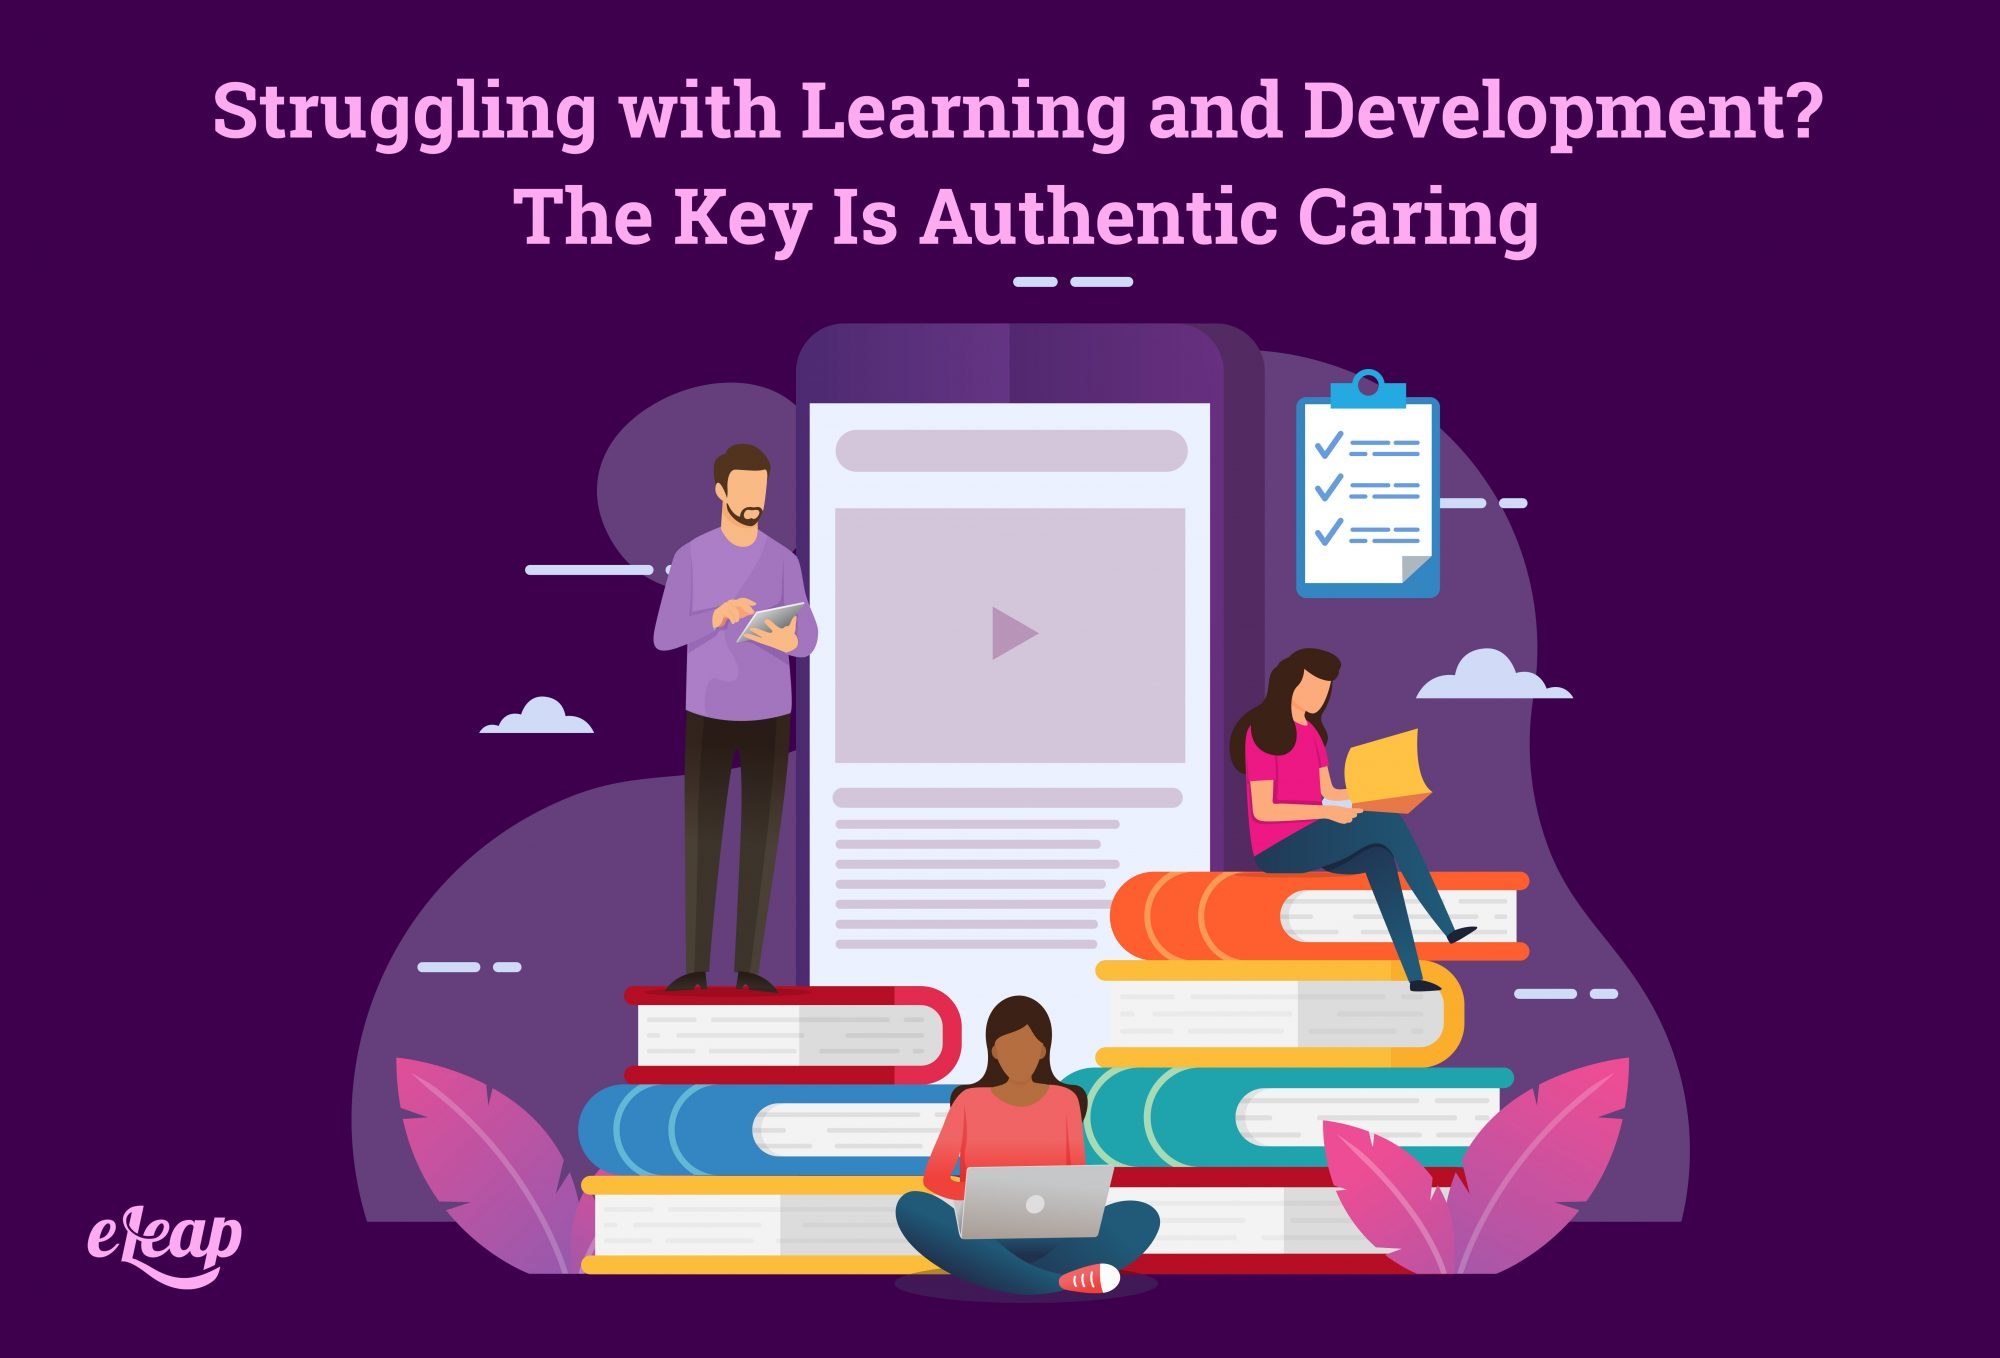 Struggling with Learning and Development? The Key Is Authentic Caring